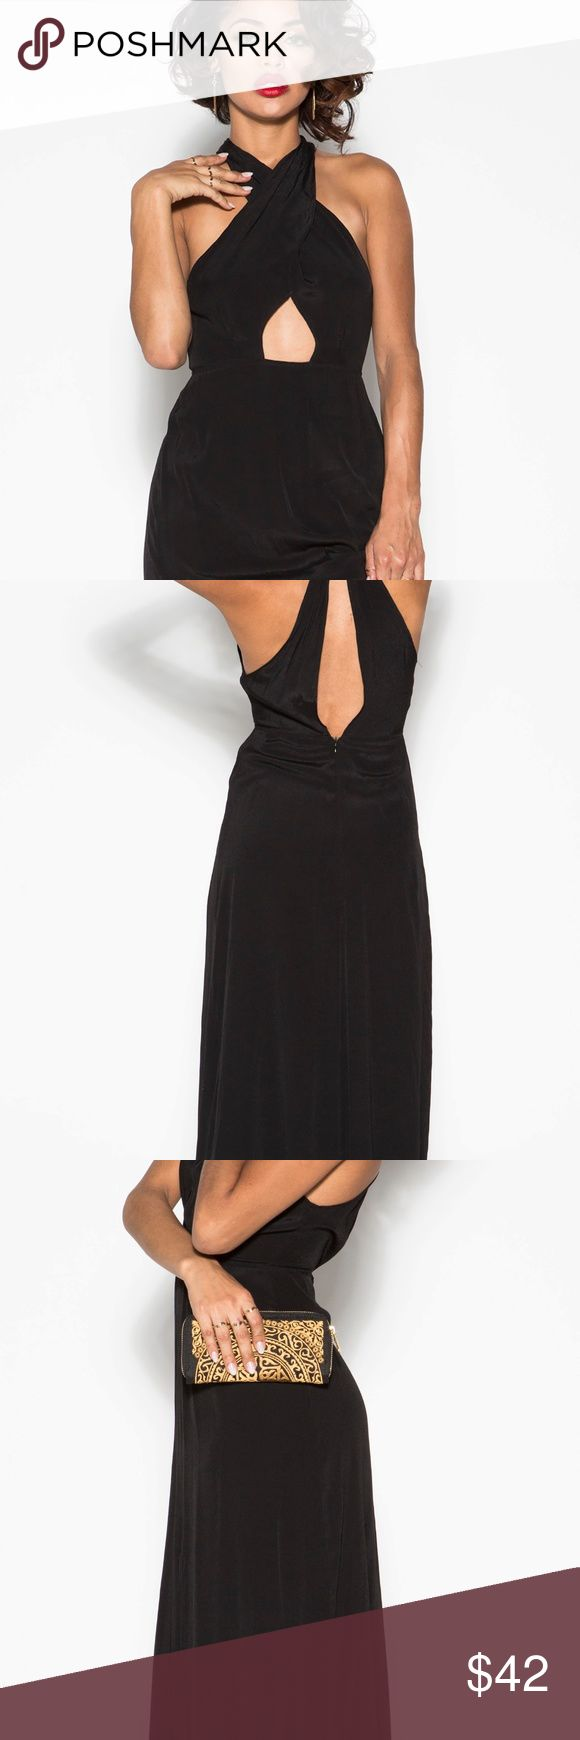 Elegant Maxi Dress Play peek a boo with the strategically placed slits and cut outs Peek front slit, exposing just the right amount of leg  Deep-v halter neckline Criss-crossed back strap detail (elegantly exposes the back)  available in BLACK or ORANGE (Rustic) Dresses Maxi